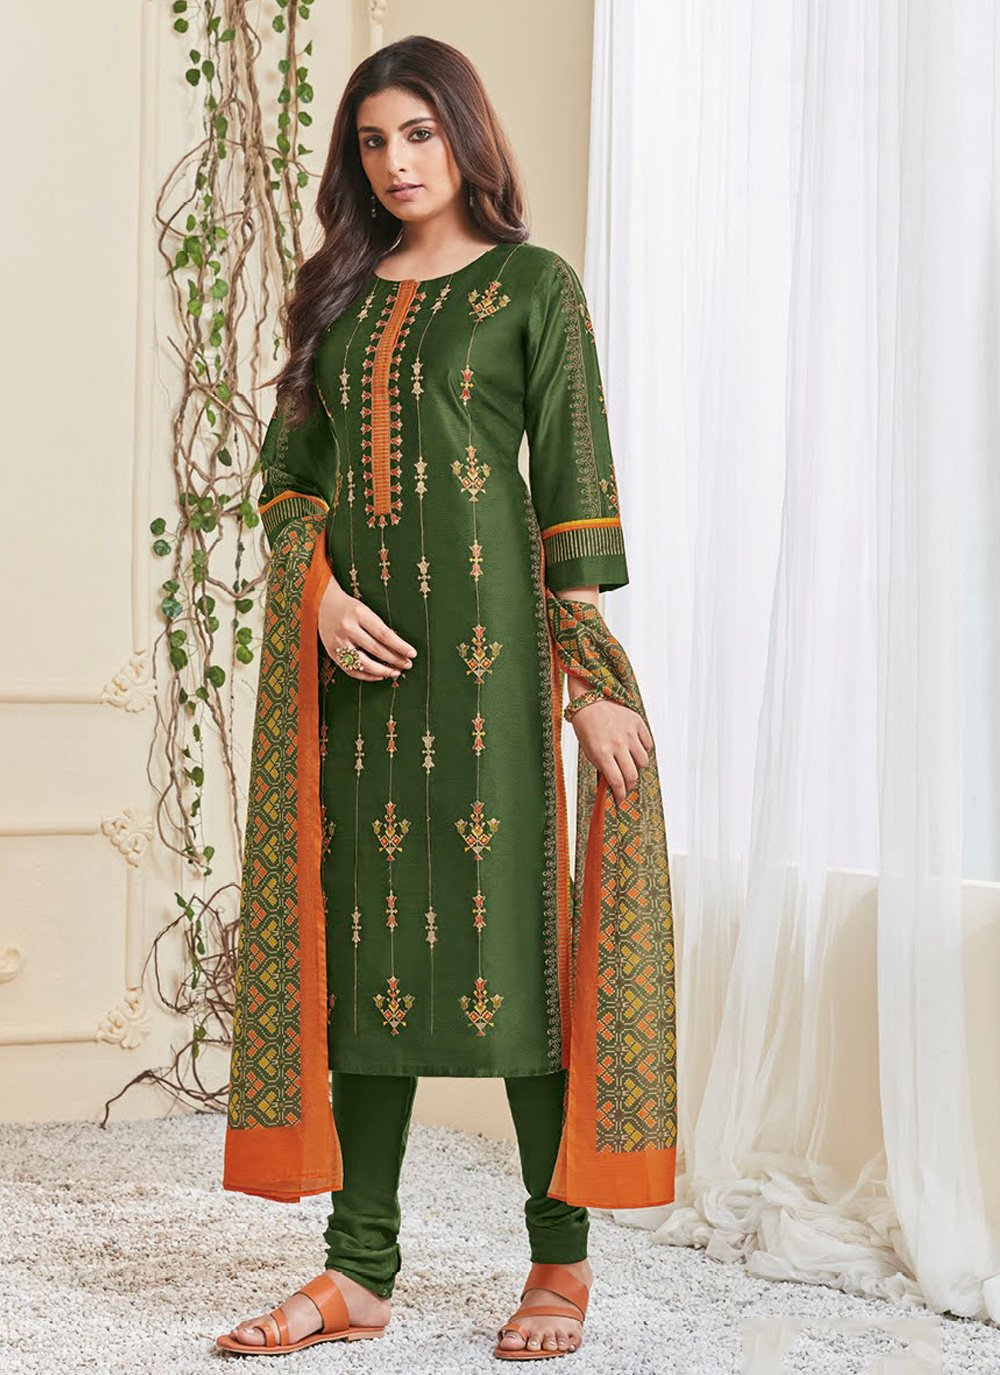 Polly Cotton Resham Salwar Kameez